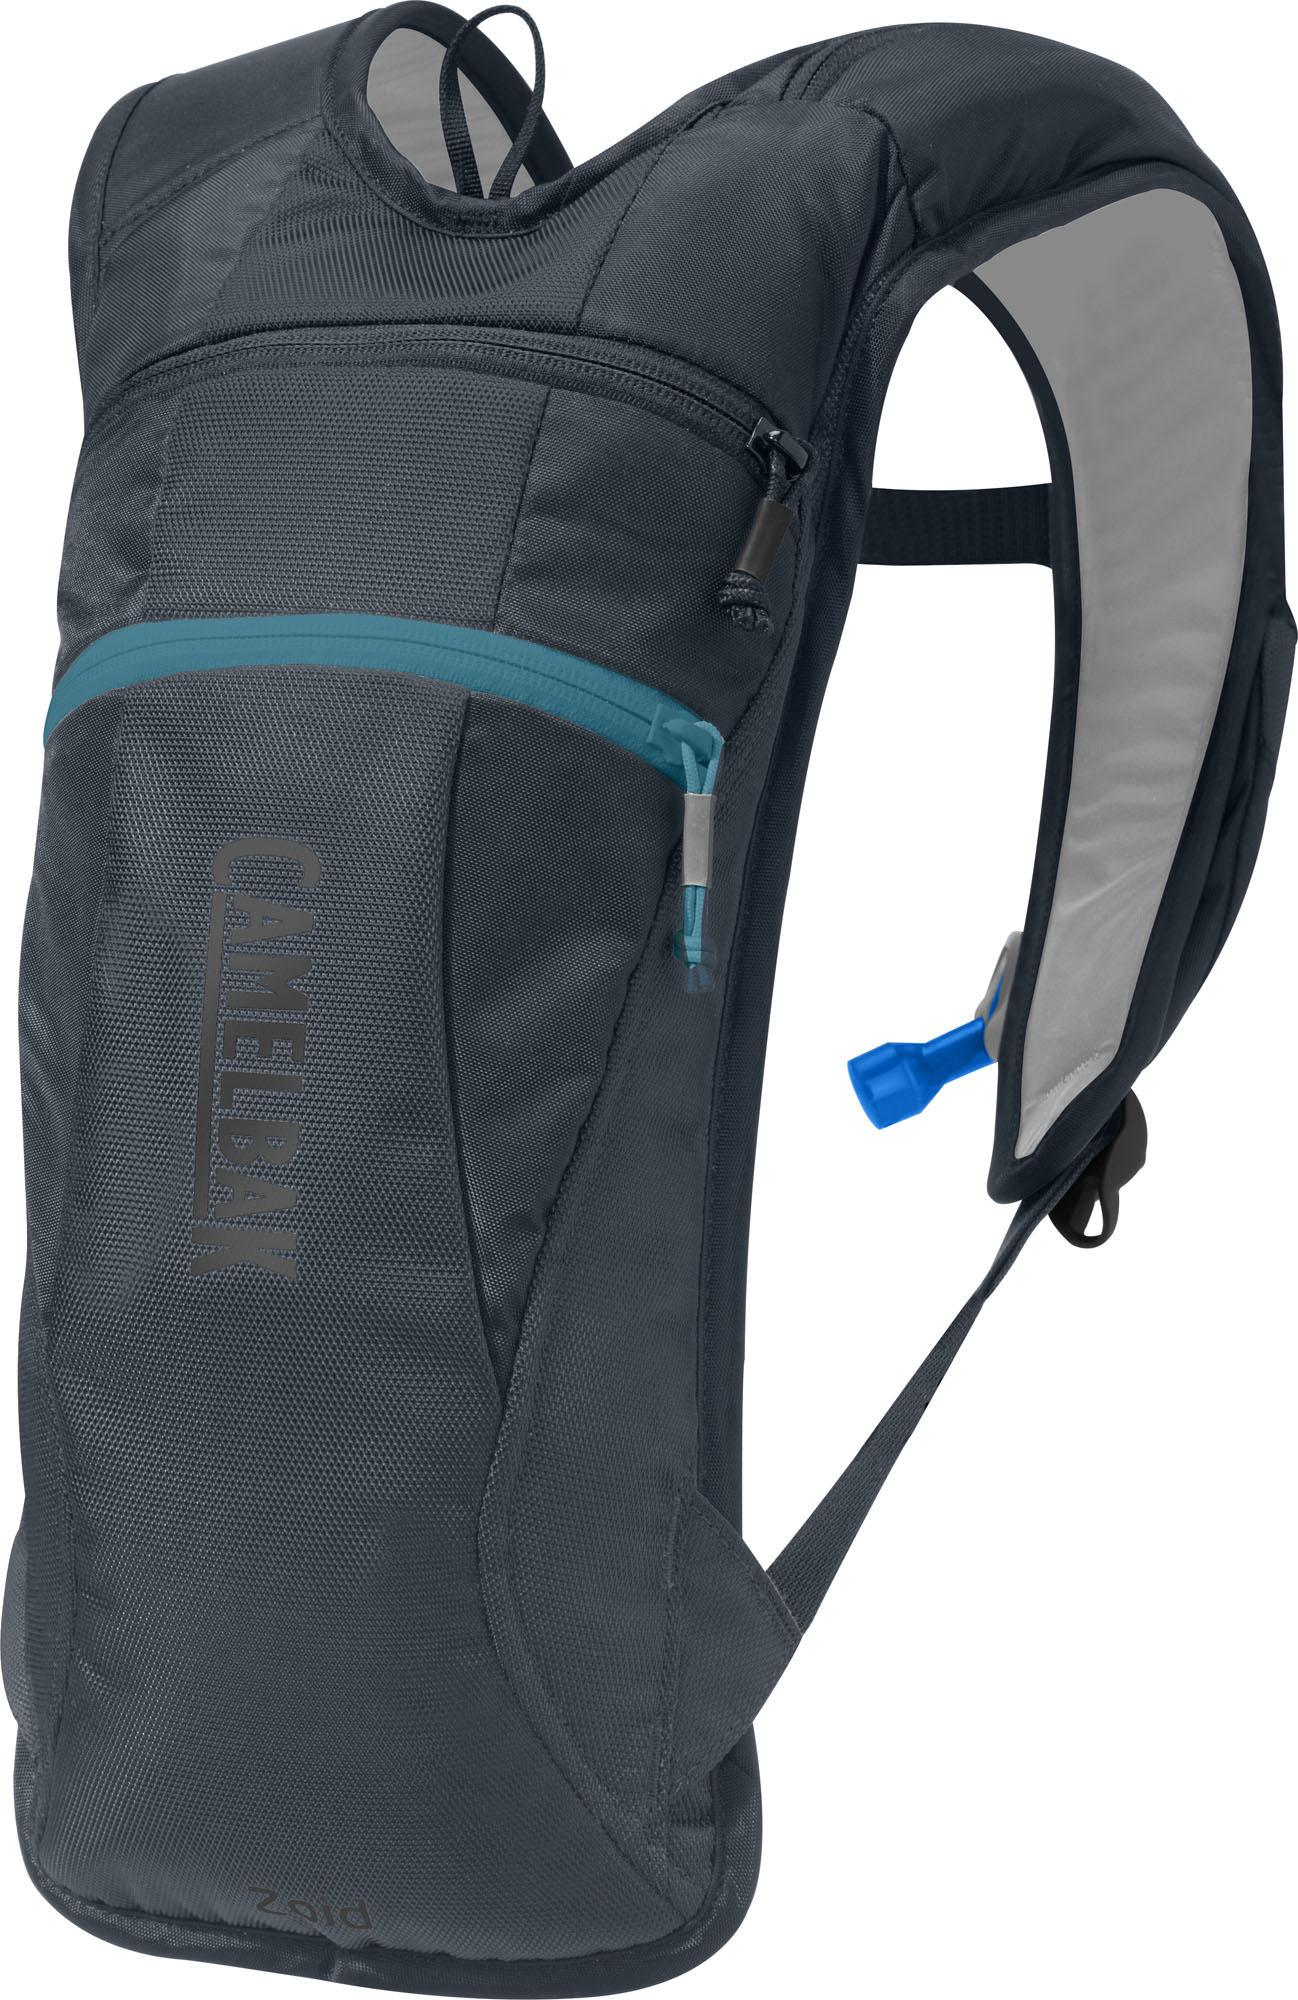 CamelBak Zoid pack in Slate Grey